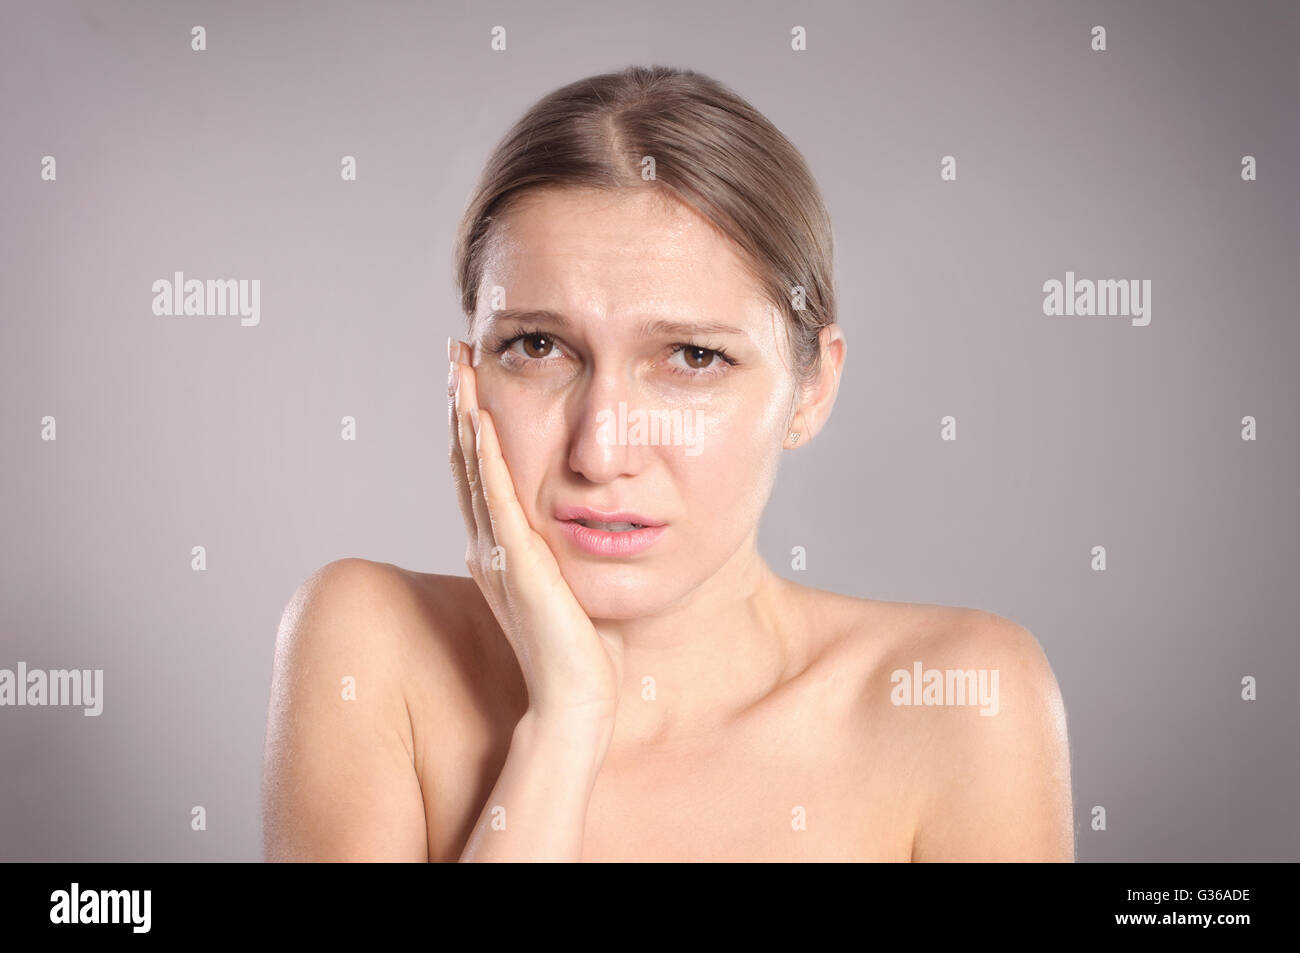 Portrait of young woman with toothache - Stock Image